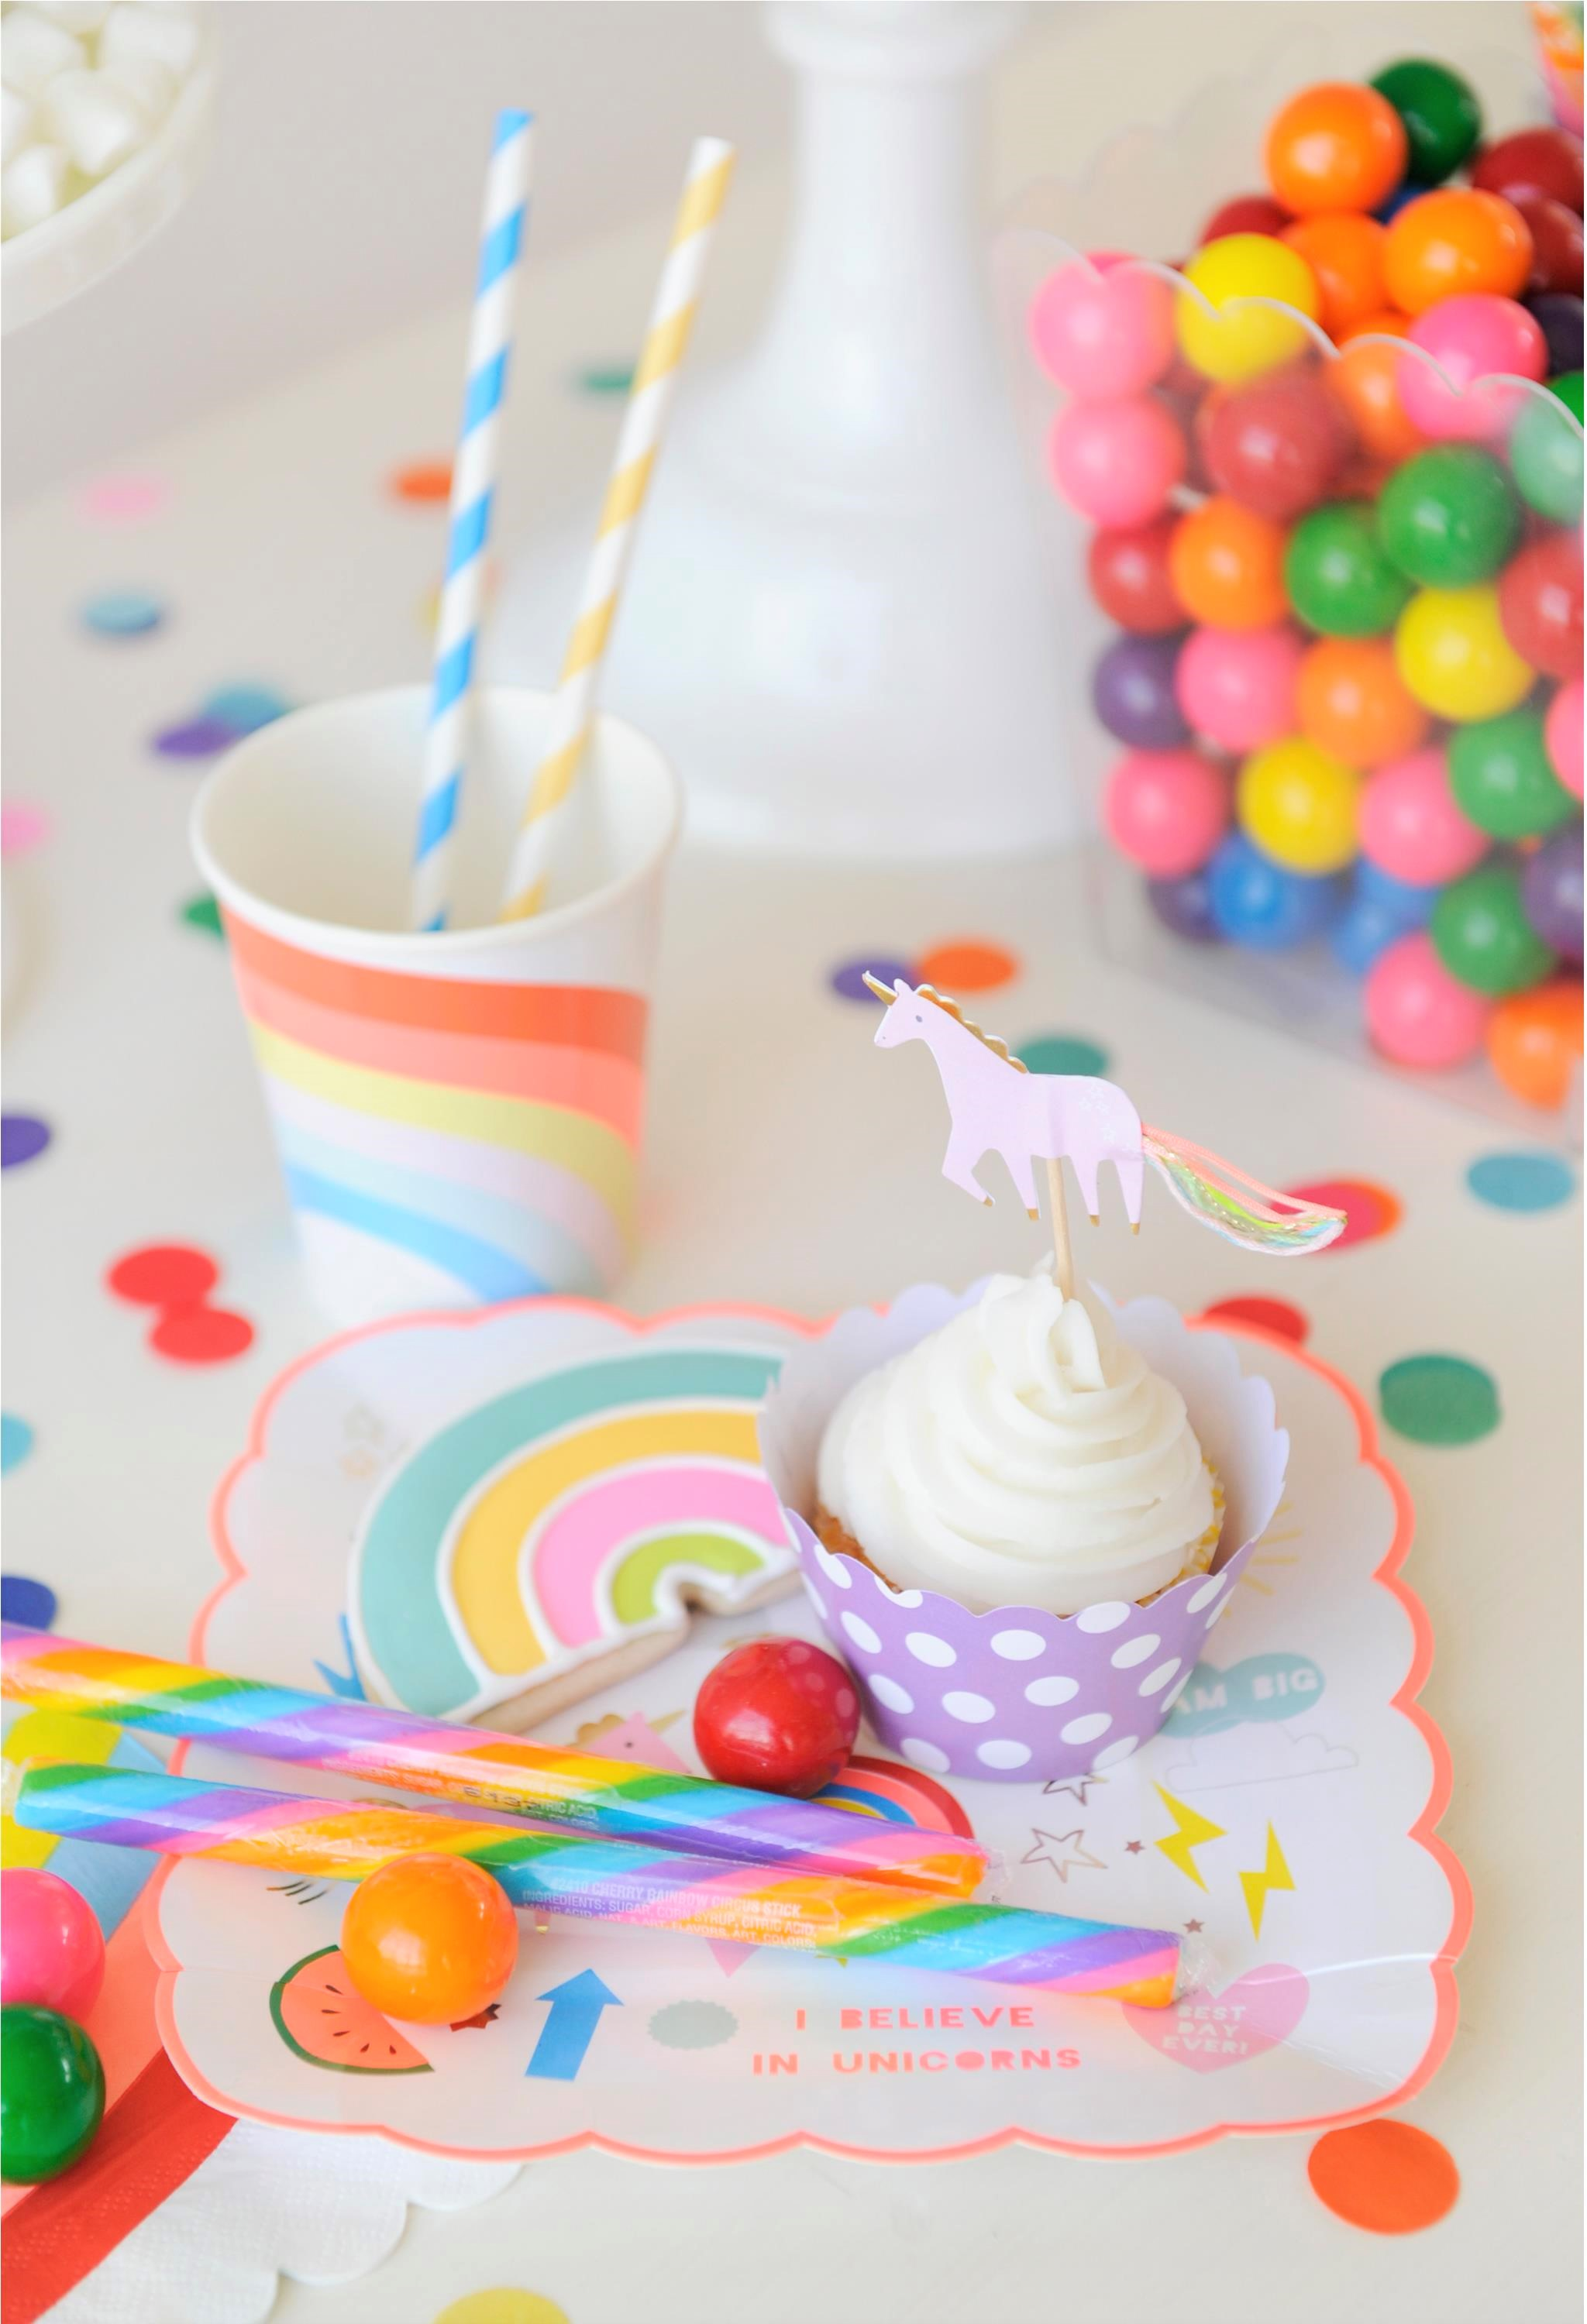 Over the Rainbow Party for Kids Colorful Kids Party Treats